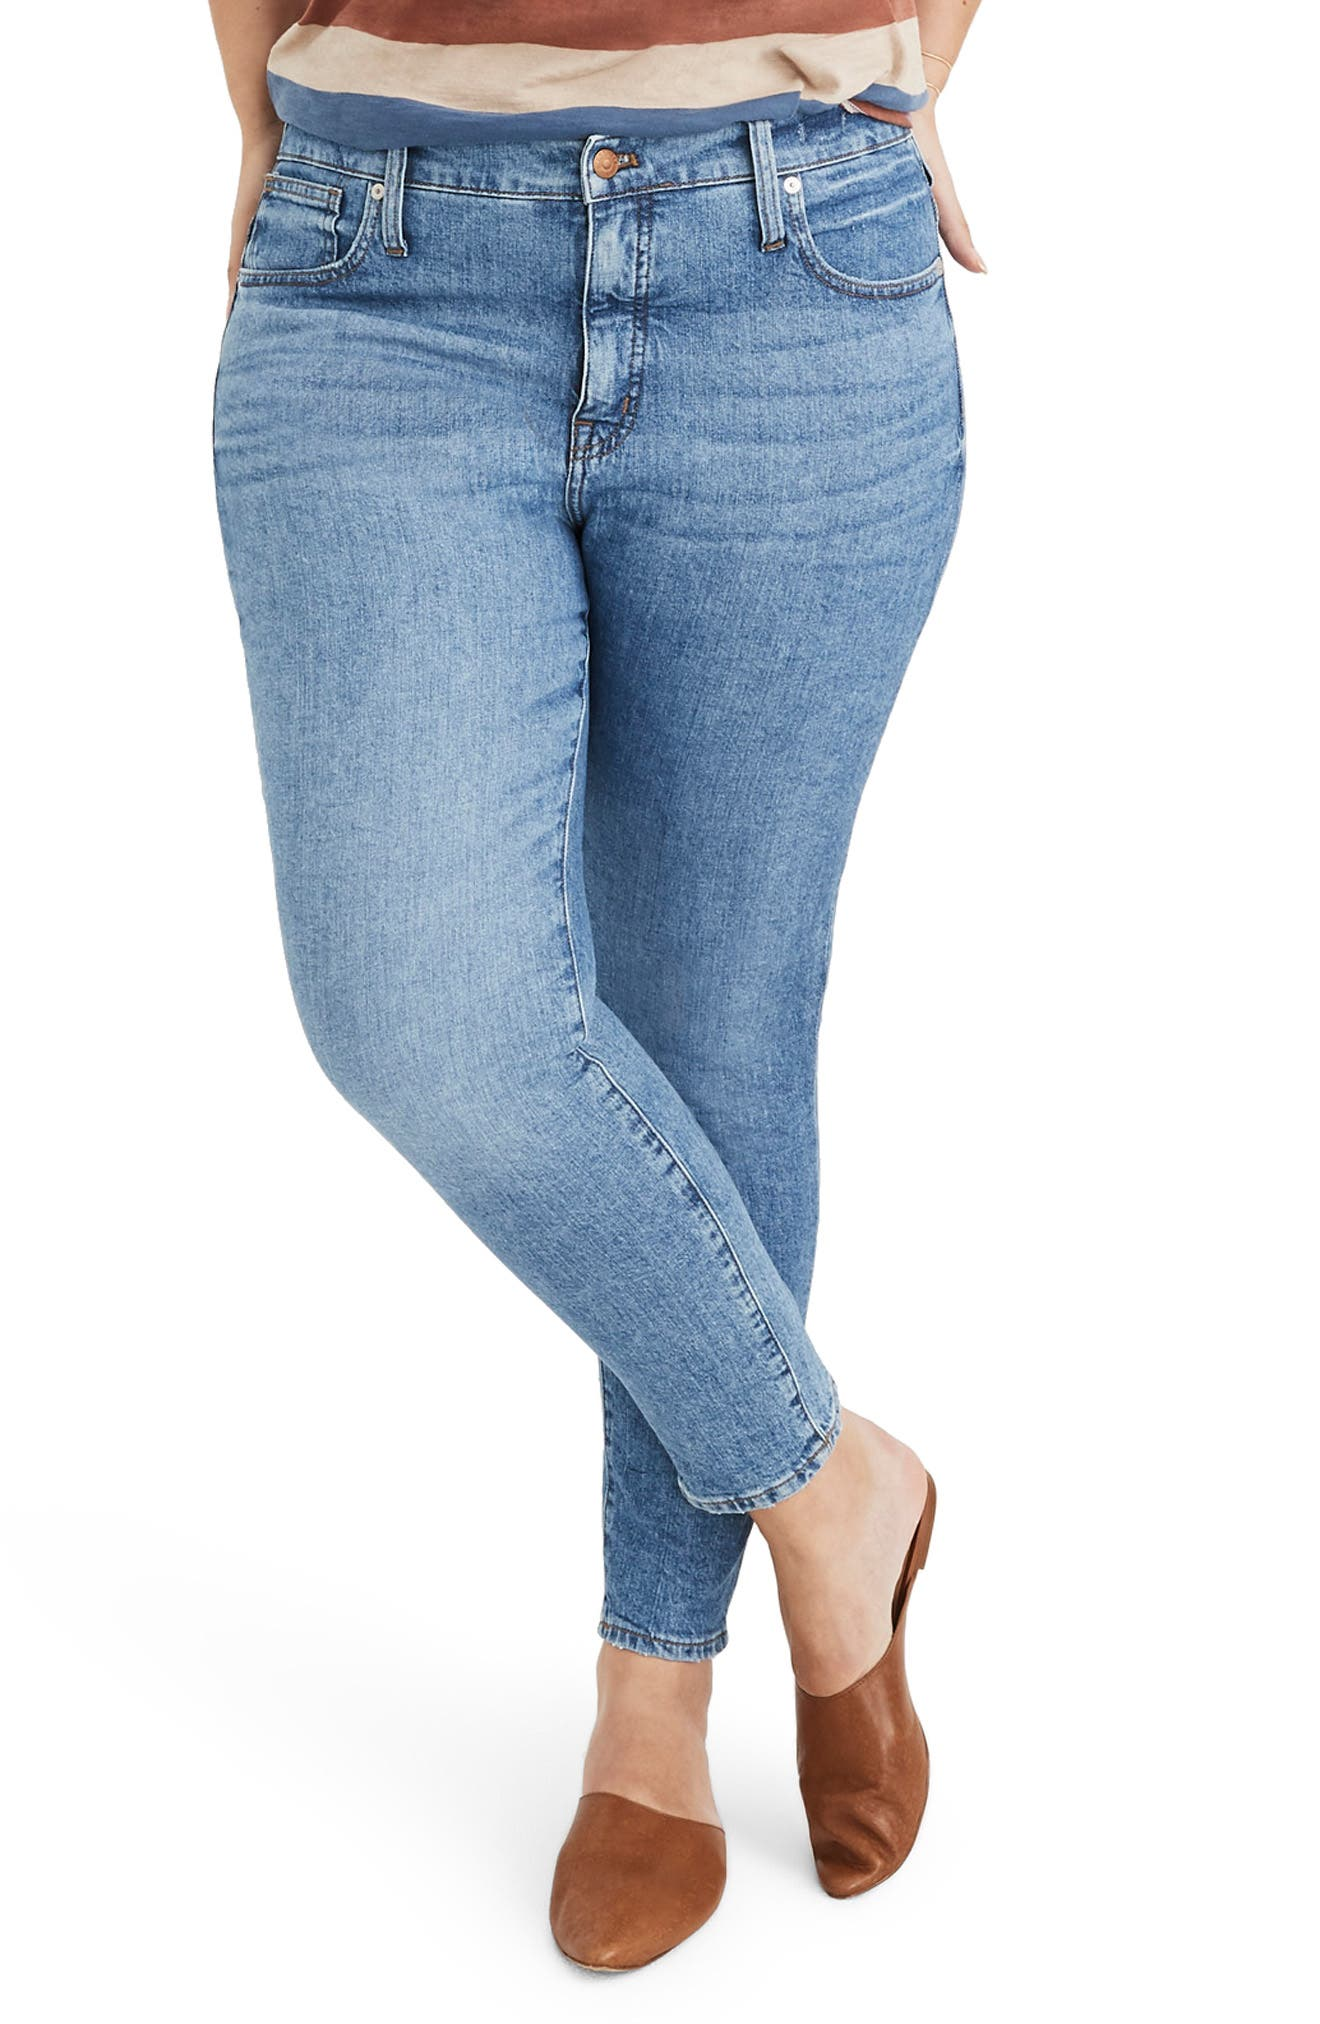 9-Inch High Waist Stretch Skinny Jeans,                             Alternate thumbnail 2, color,                             REGINA